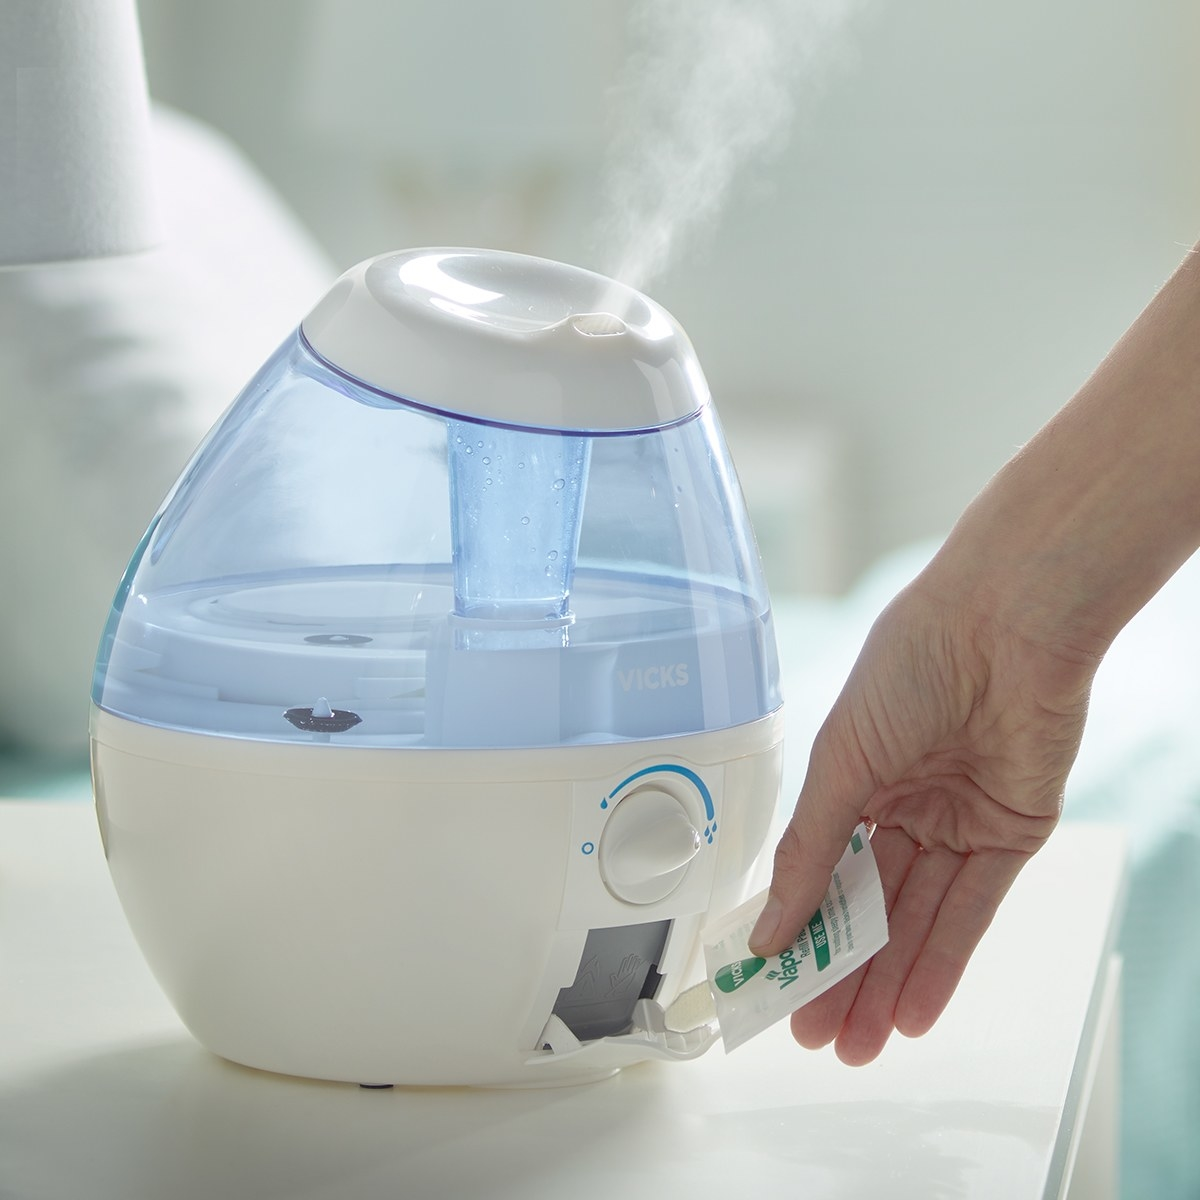 The humidifier emitting steam